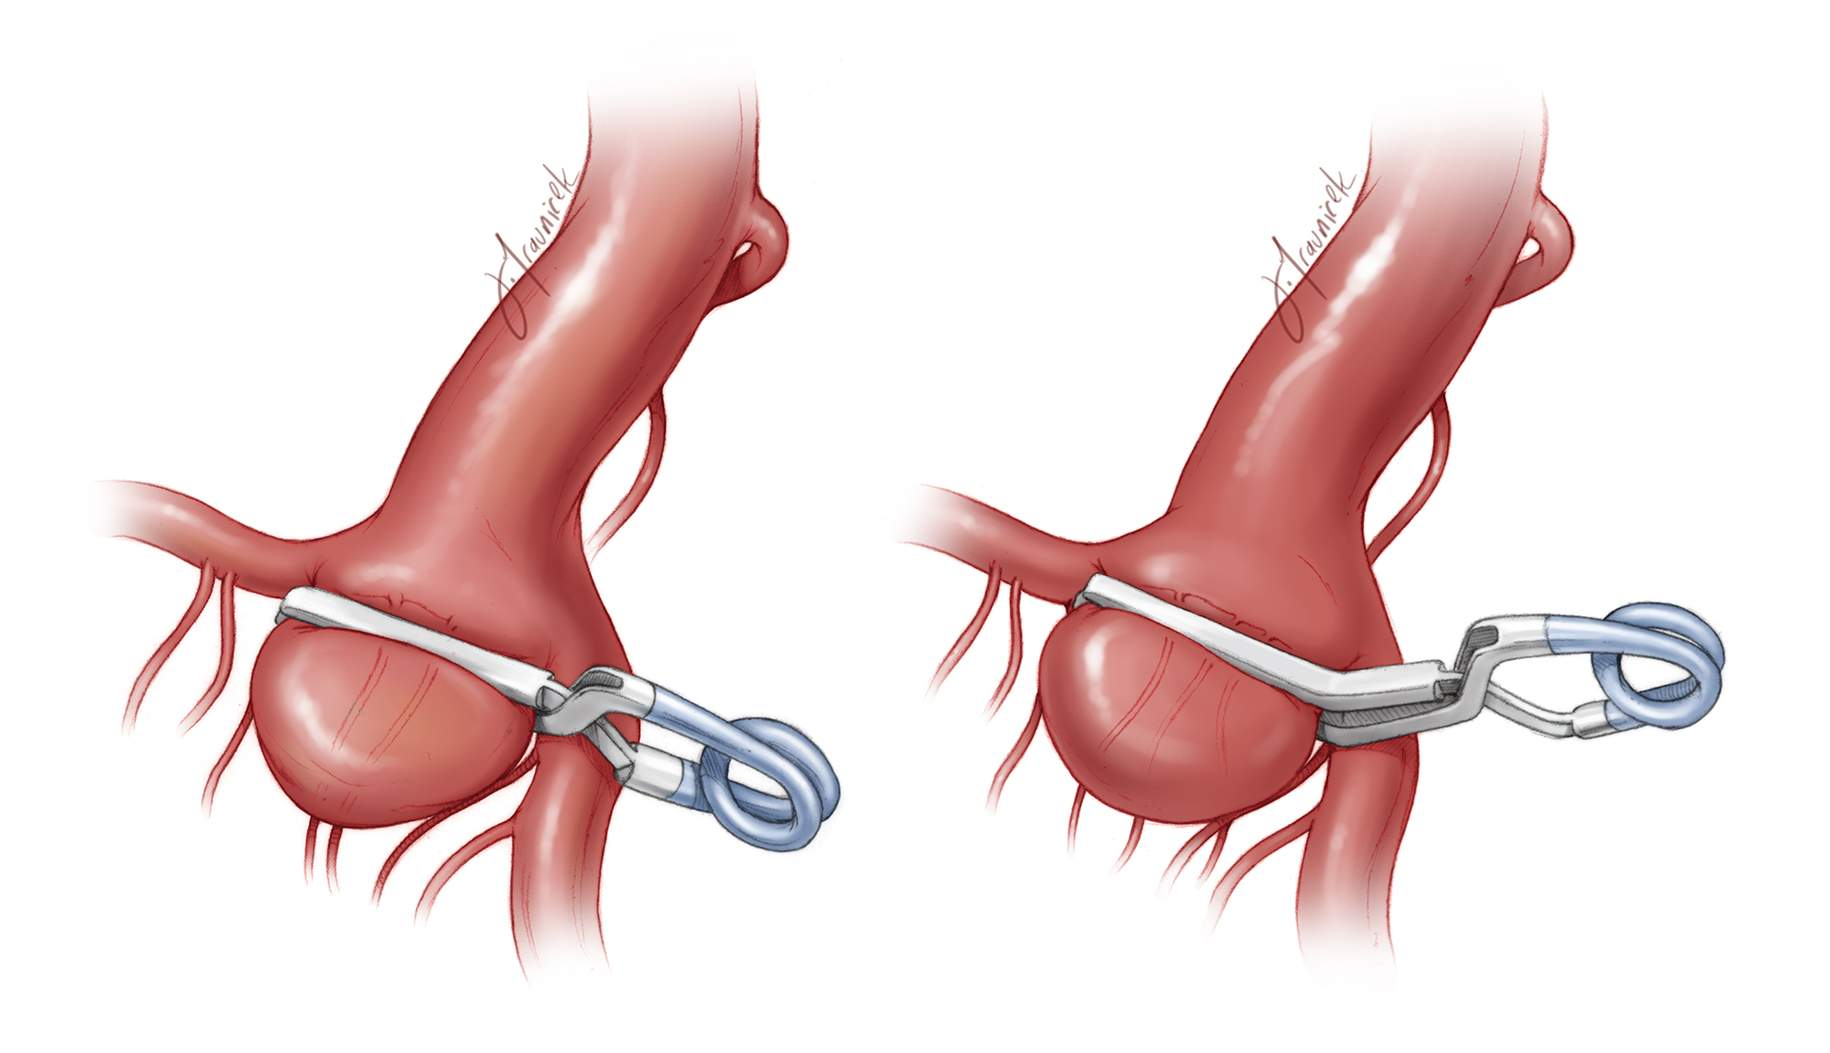 Figure 8: An internal carotid artery (ICA) bifurcation aneurysm is shown clipped using a simple straight clip (left image) or an angled clip (right image). The angled clip may avoid the MCA branch, ensuring that the hinge of the clip does not kink its lumen. The medial ICA perforators must be saved.